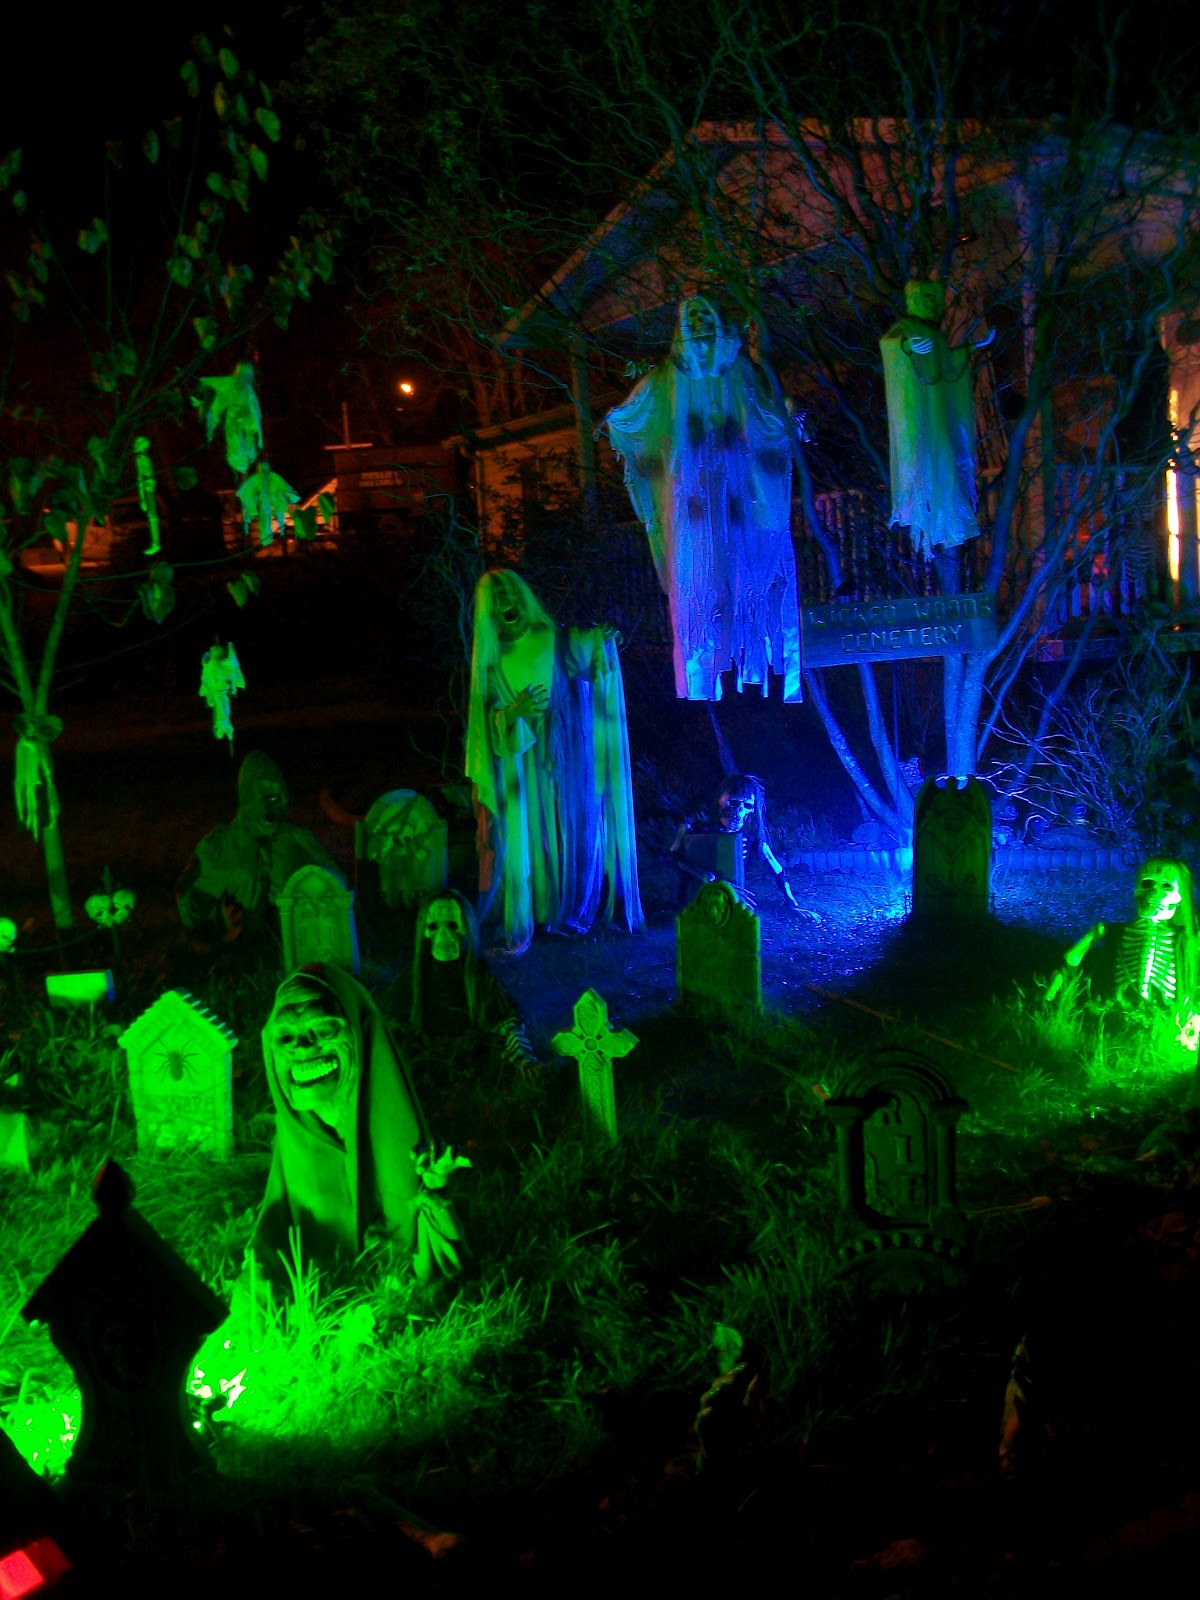 Something wicKED this way comes: A wicKED opinion on yard haunt lighting.